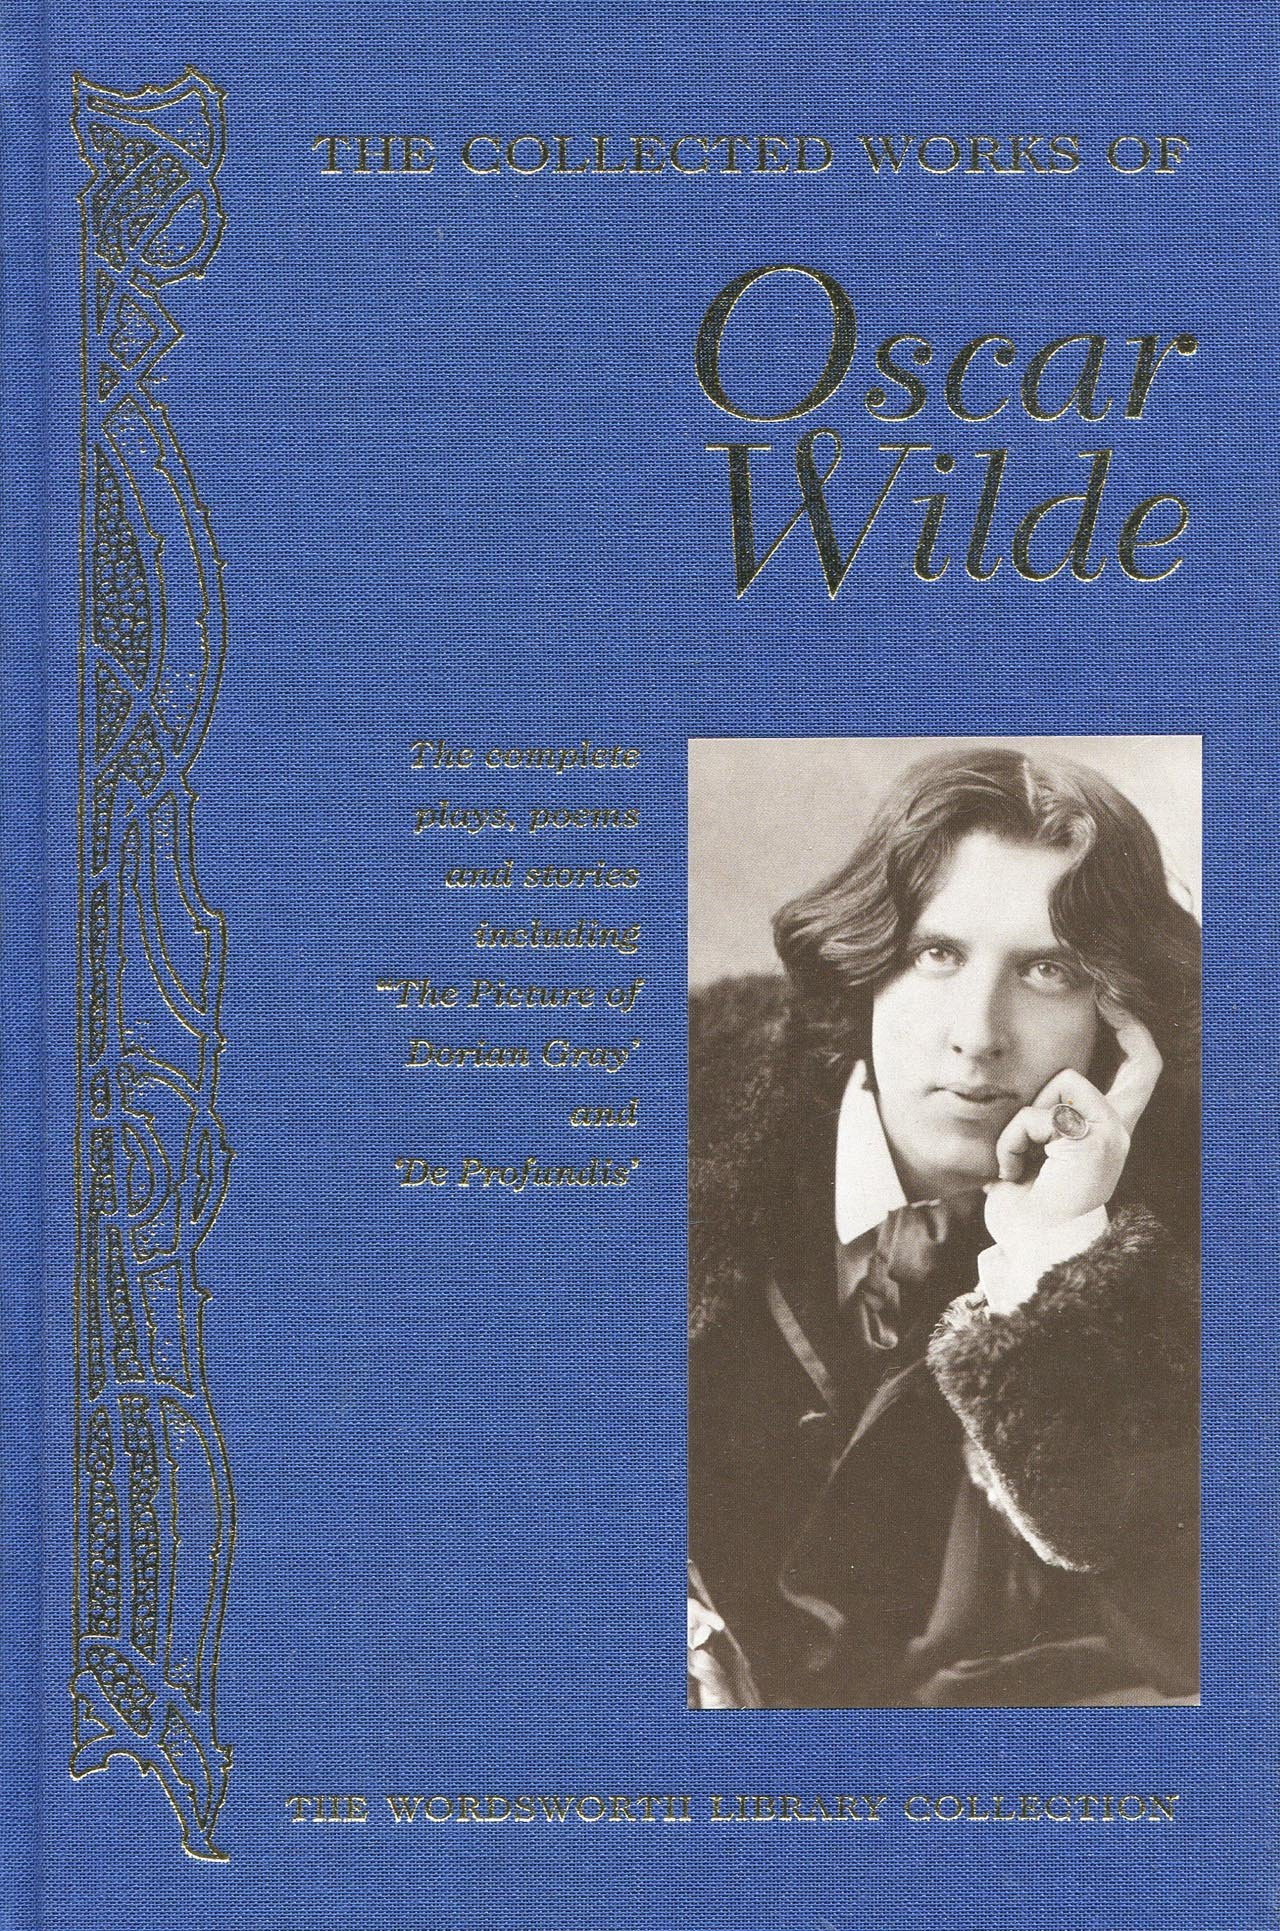 the collected works of oscar wilde wordsworth library collection the collected works of oscar wilde wordsworth library collection oscar wilde 9781840225501 com books